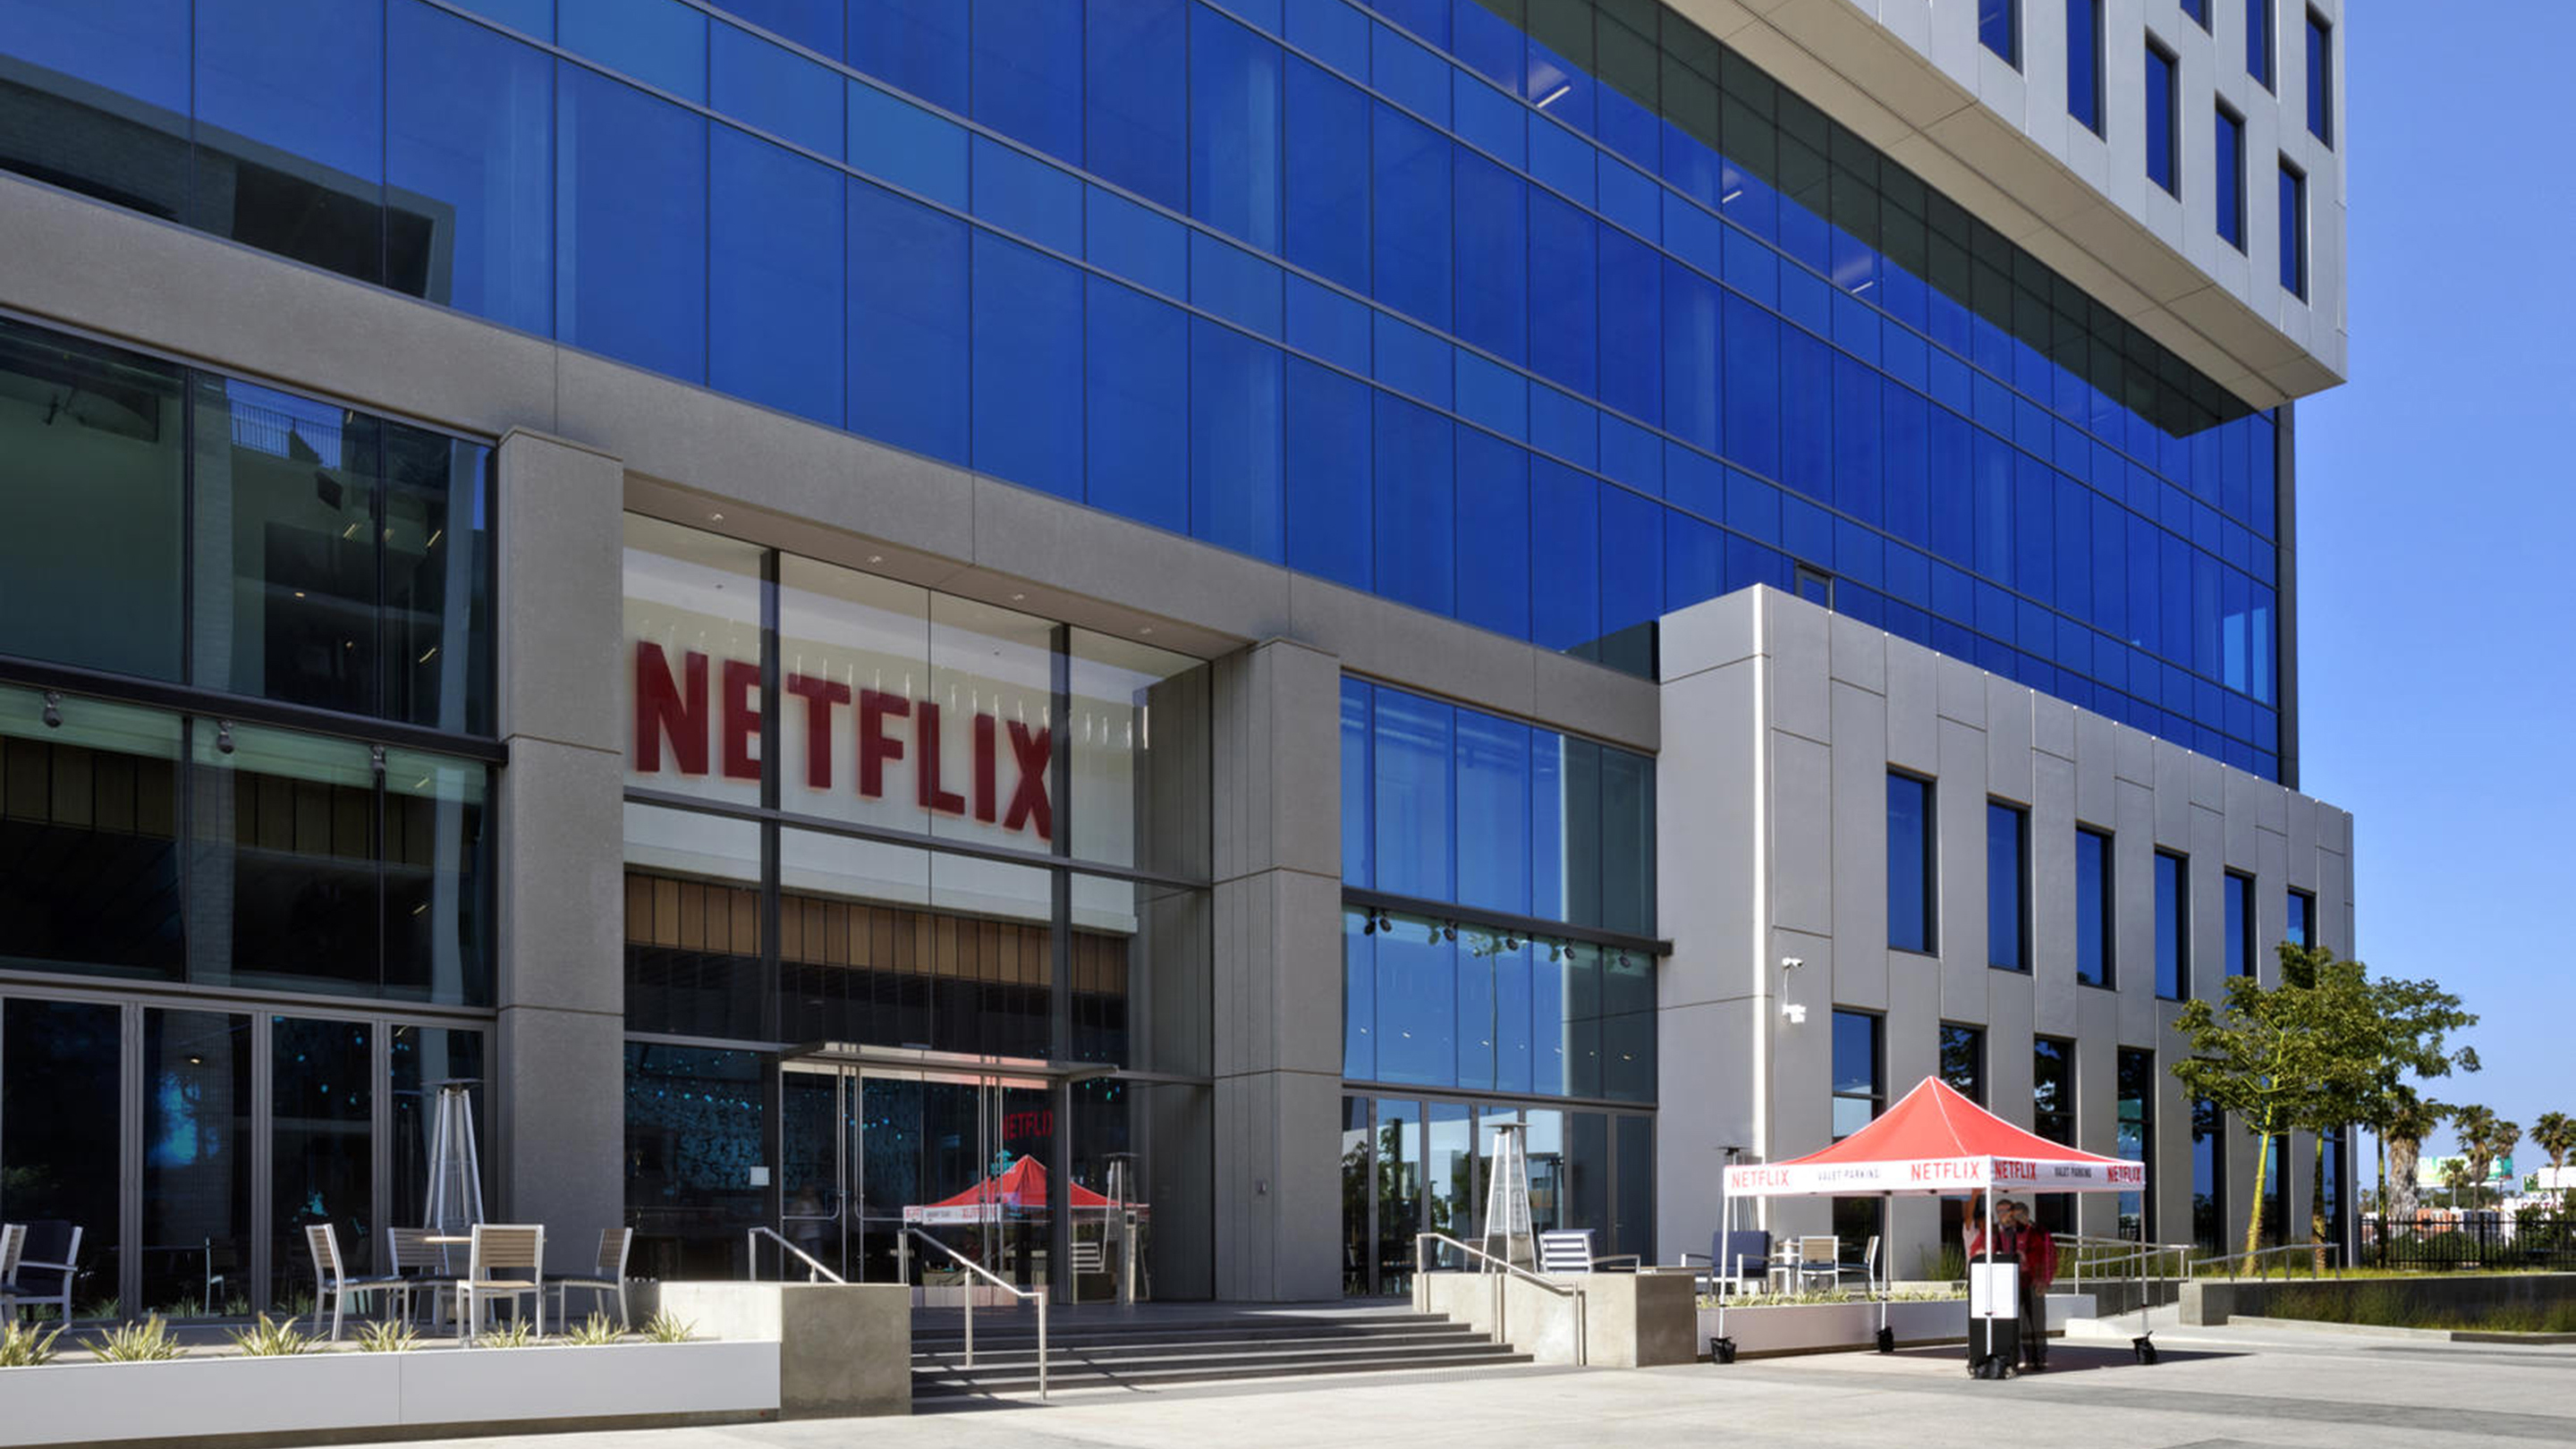 Netflix will move $100 million into Black-owned banks thumbnail